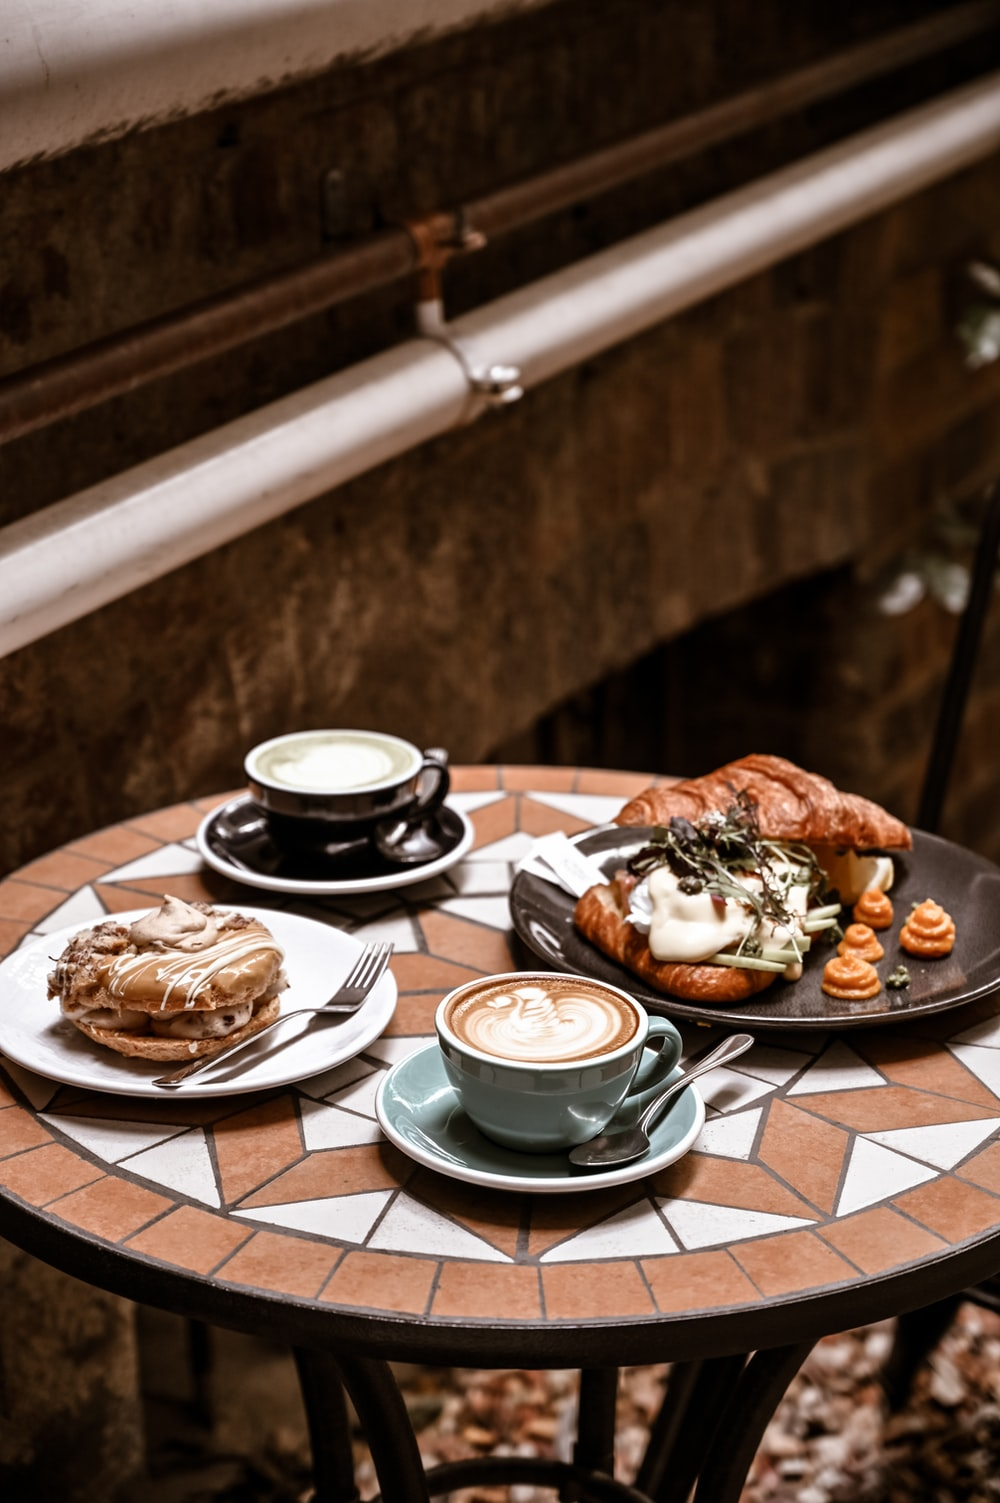 white ceramic plate with food on brown wooden table